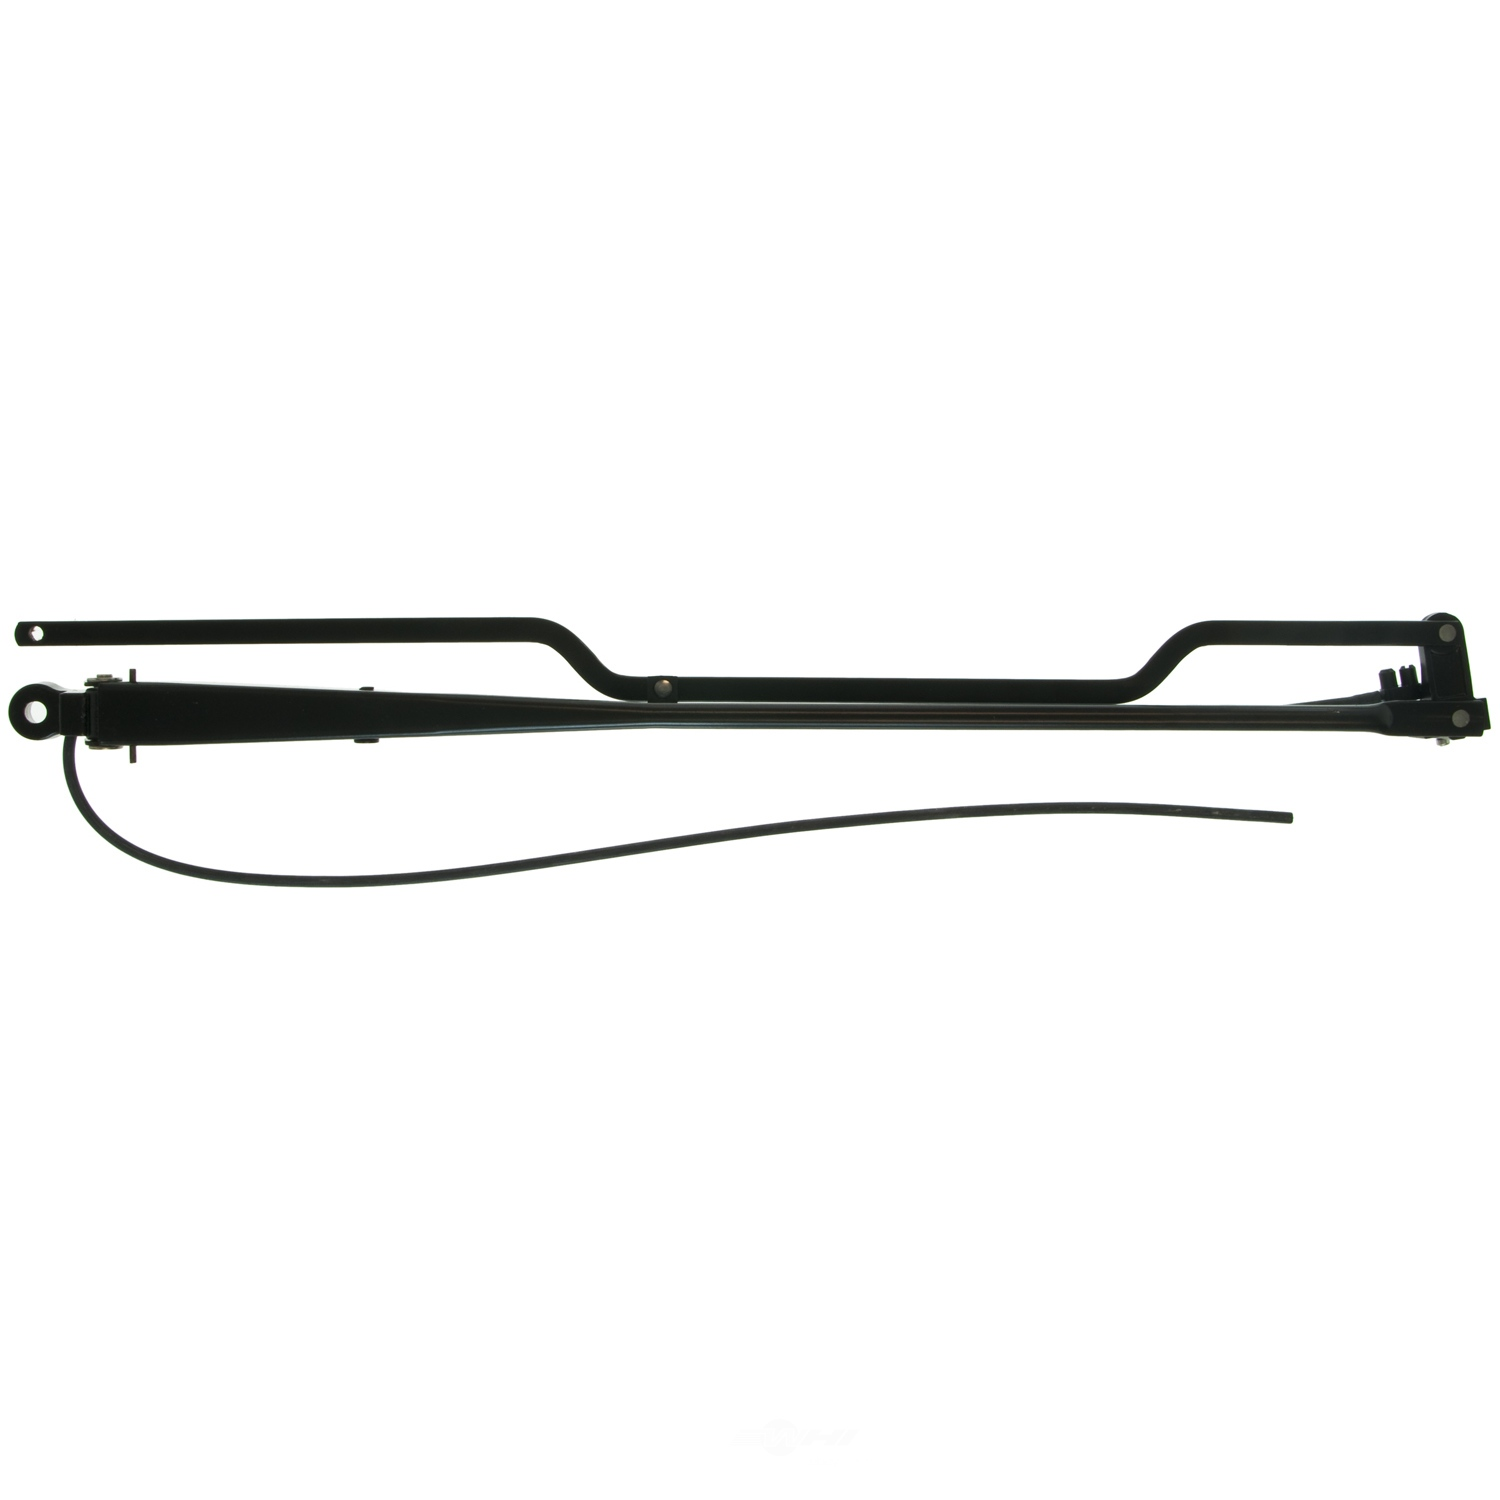 Windshield Wiper Arm Front Right ANCO 44-59 fits 2016